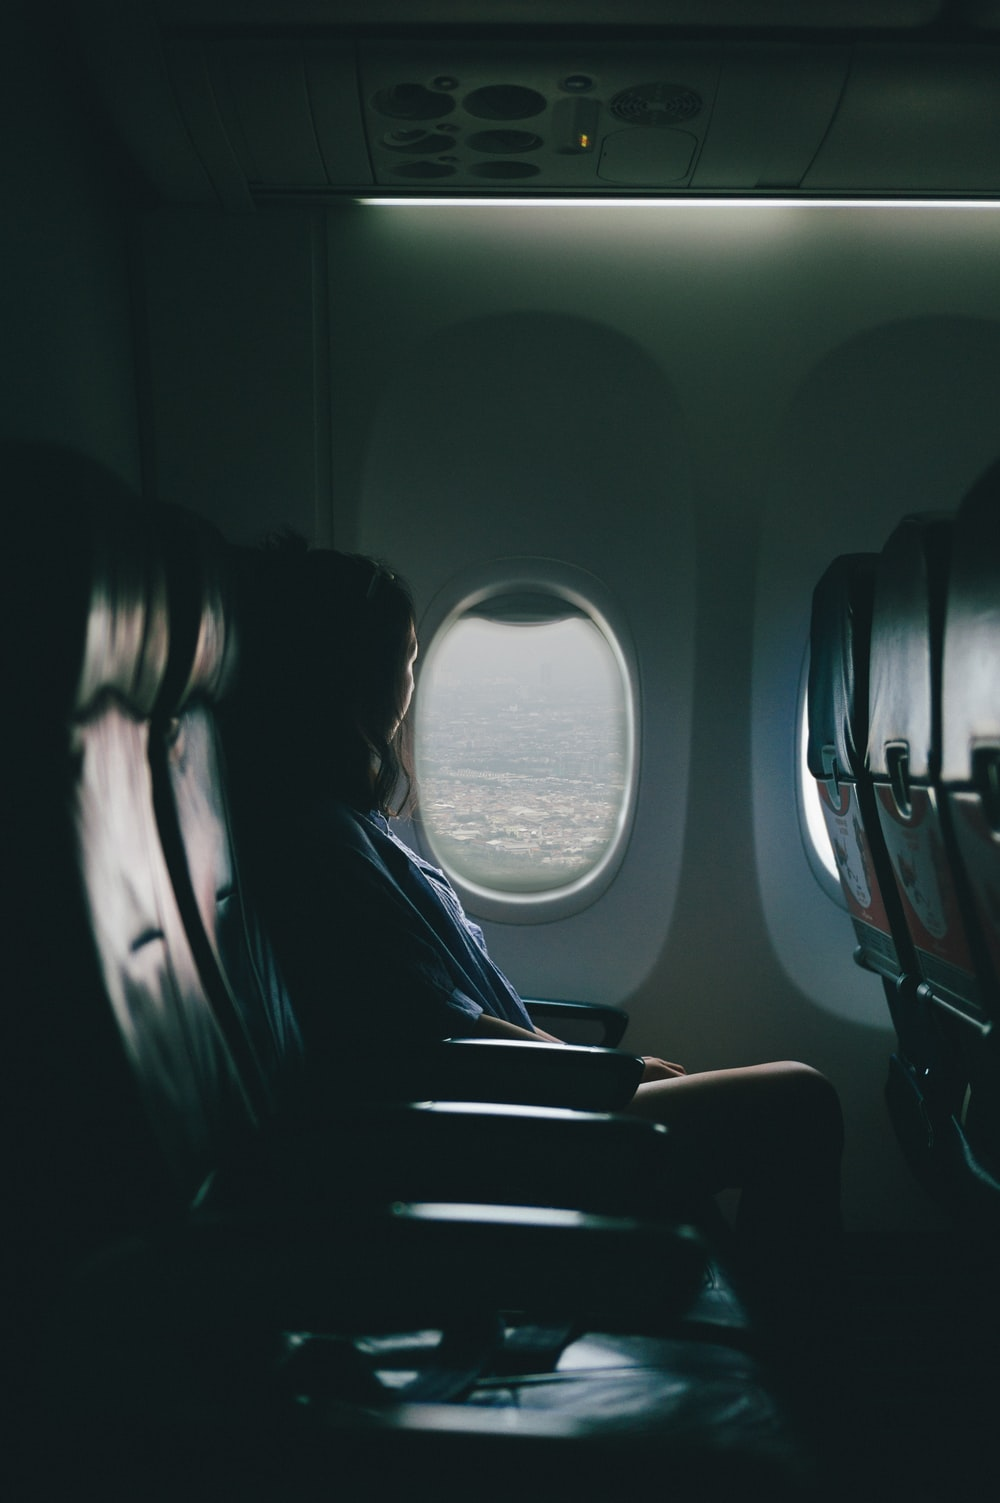 27 Airplane Window Pictures Download Free Images On Unsplash